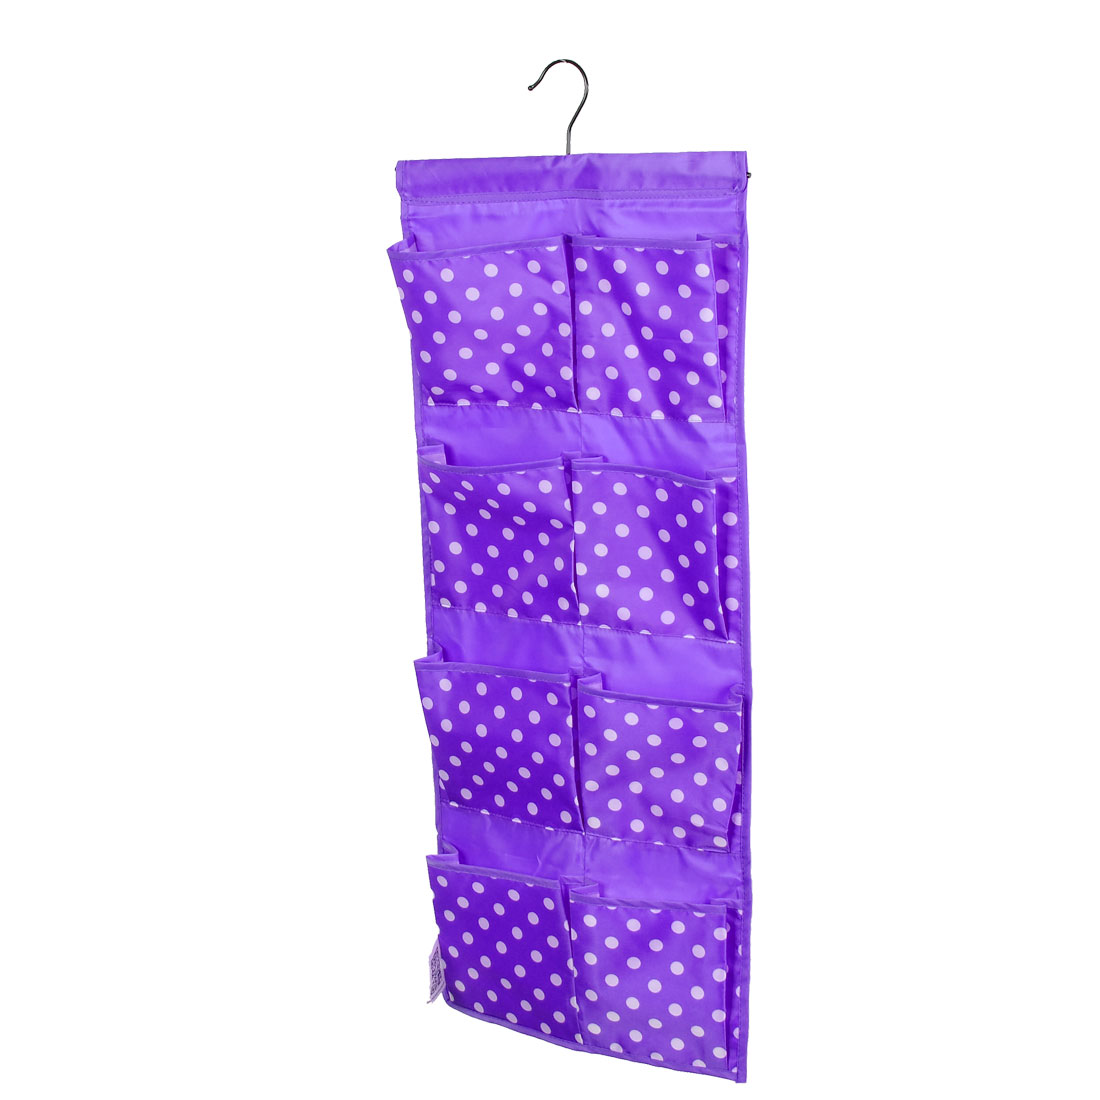 Dots Patten Wall Door Closet 8 Pockets Hanging Storage Bag Case Purple